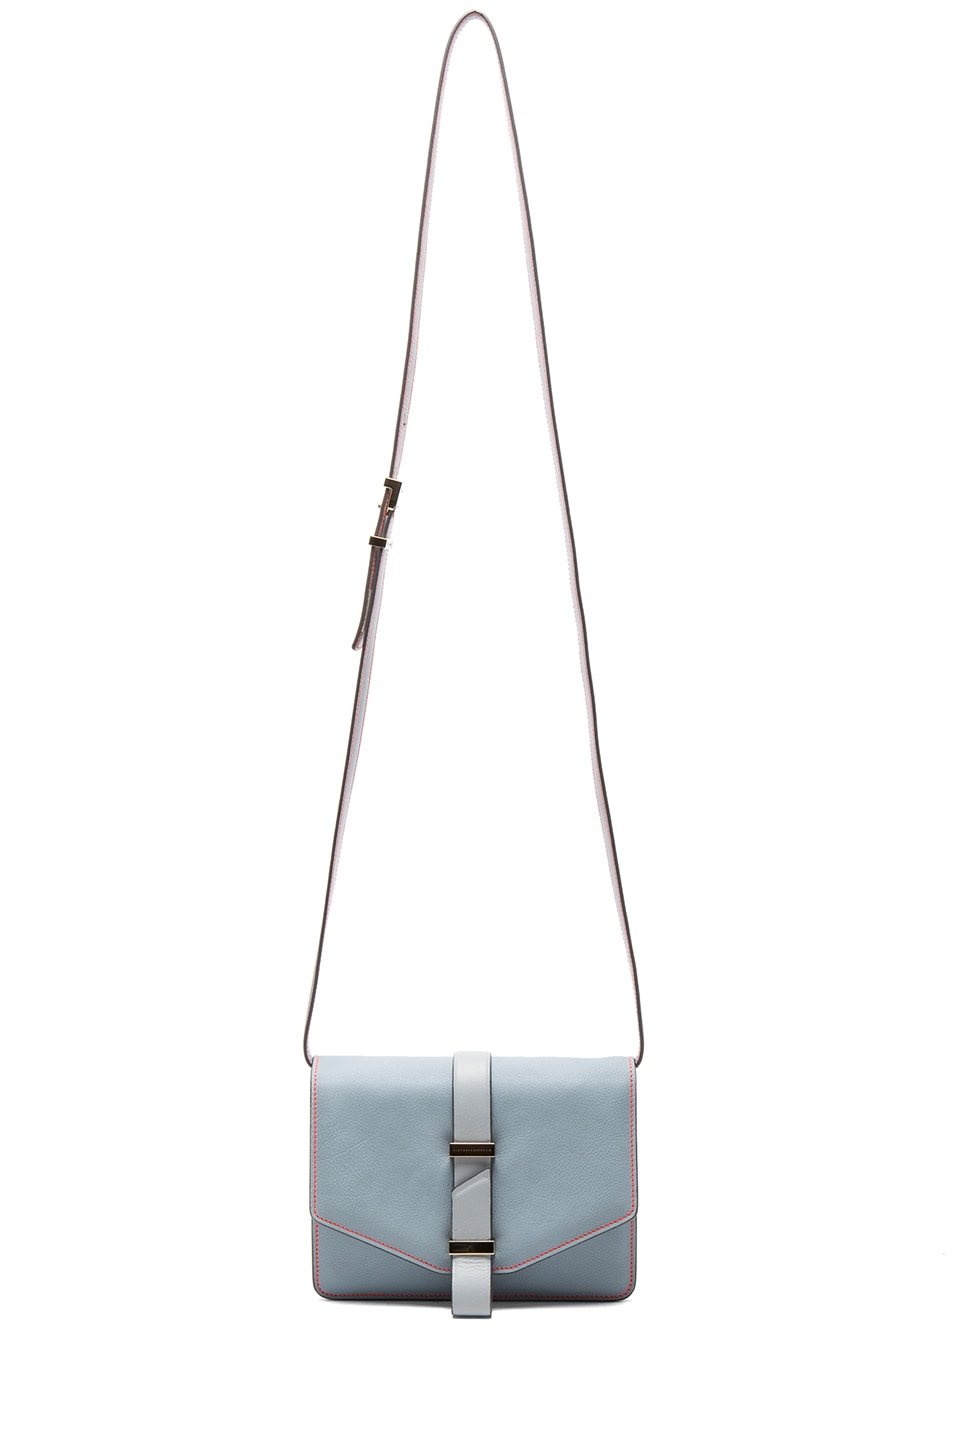 Image 5 of Victoria Beckham Mini Satchel in Rainy Day